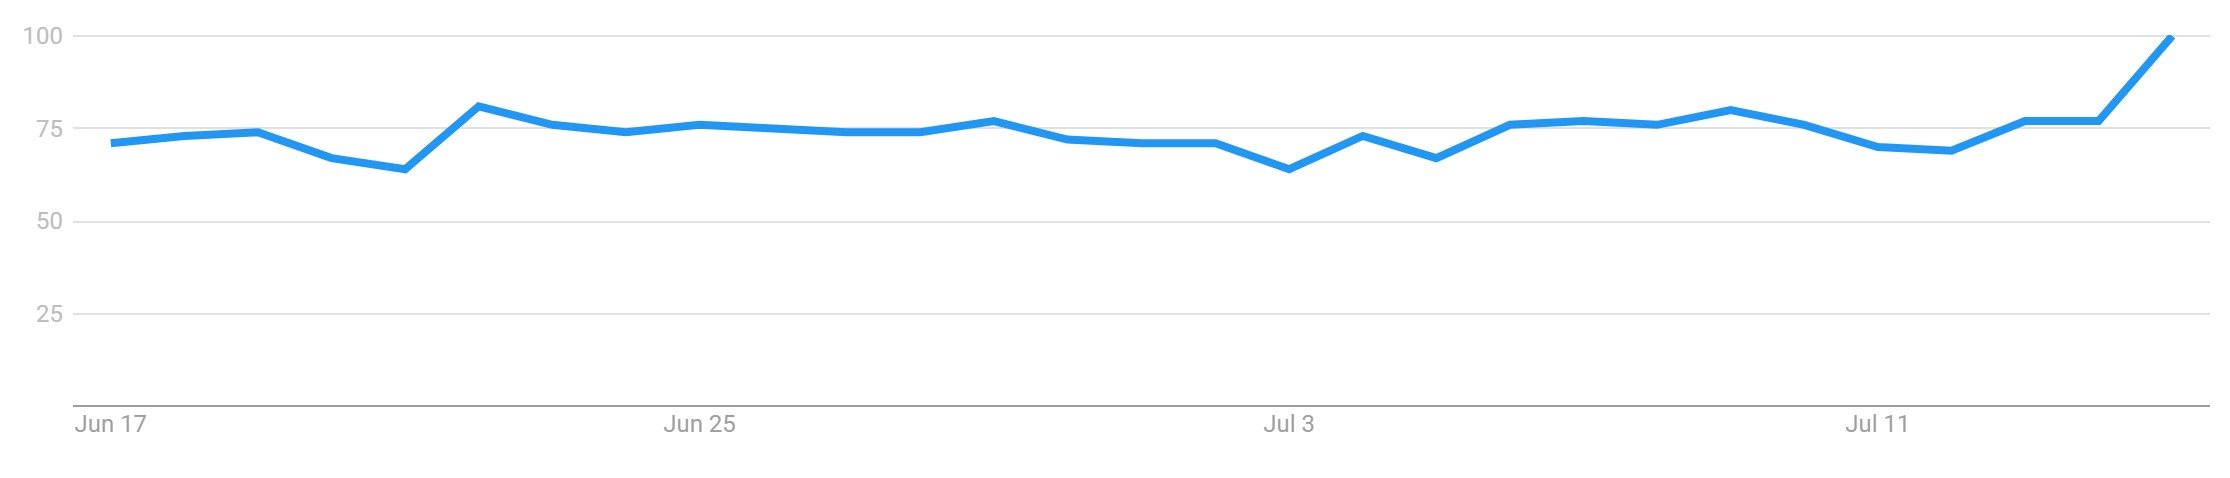 "Google Trends data for ""Bitcoin"" searches. Source: Google Trends."